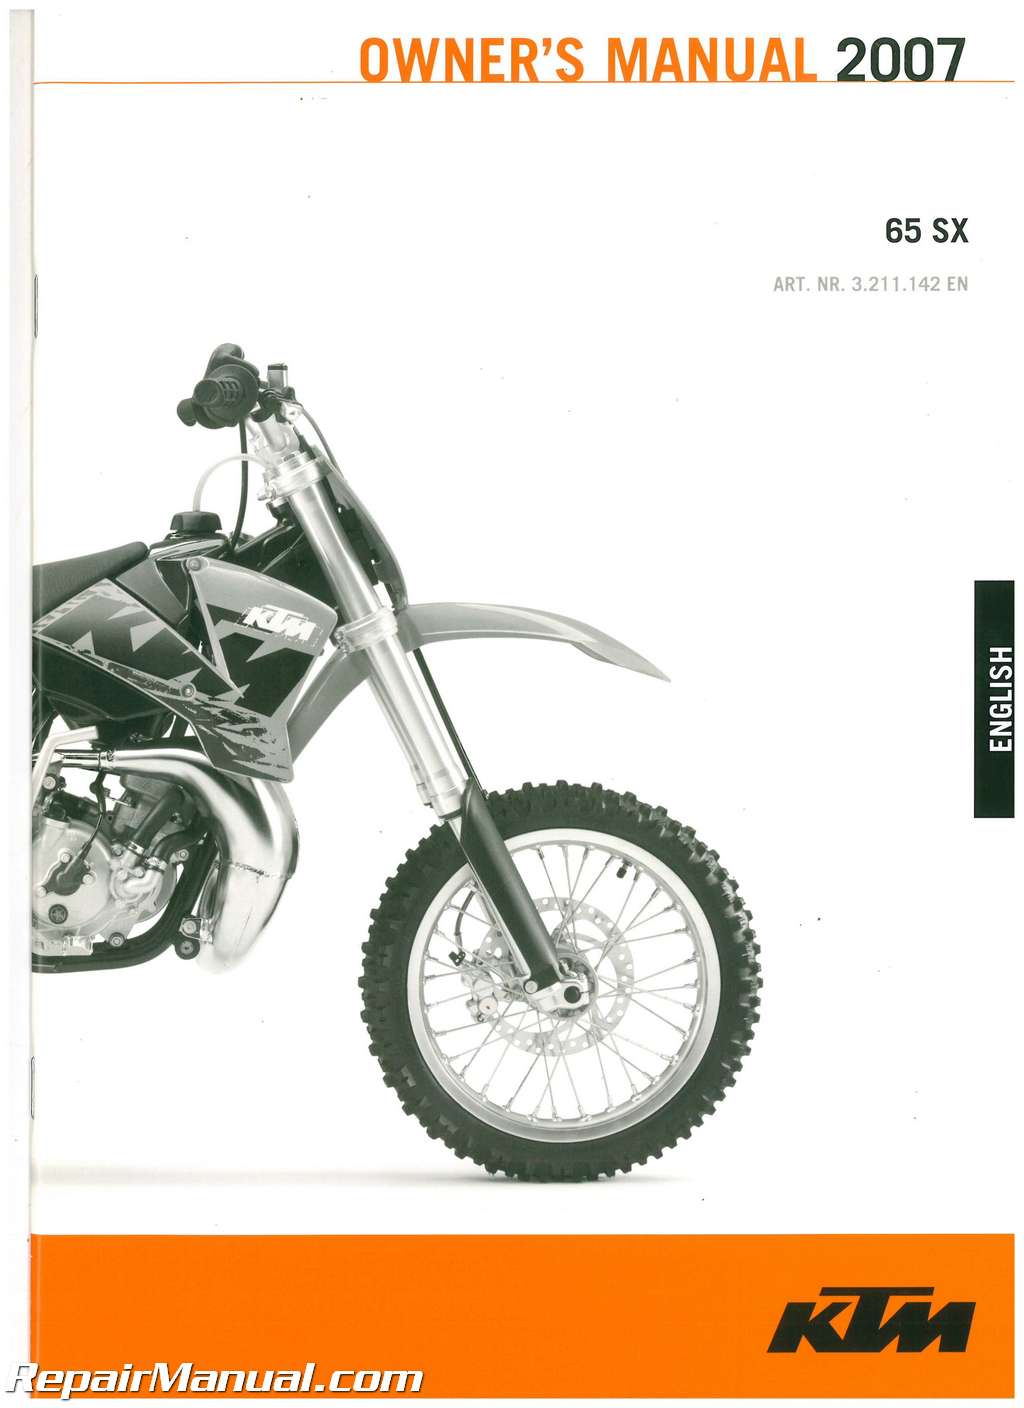 2004 yamaha pw80 owner lsquo s motorcycle service manual